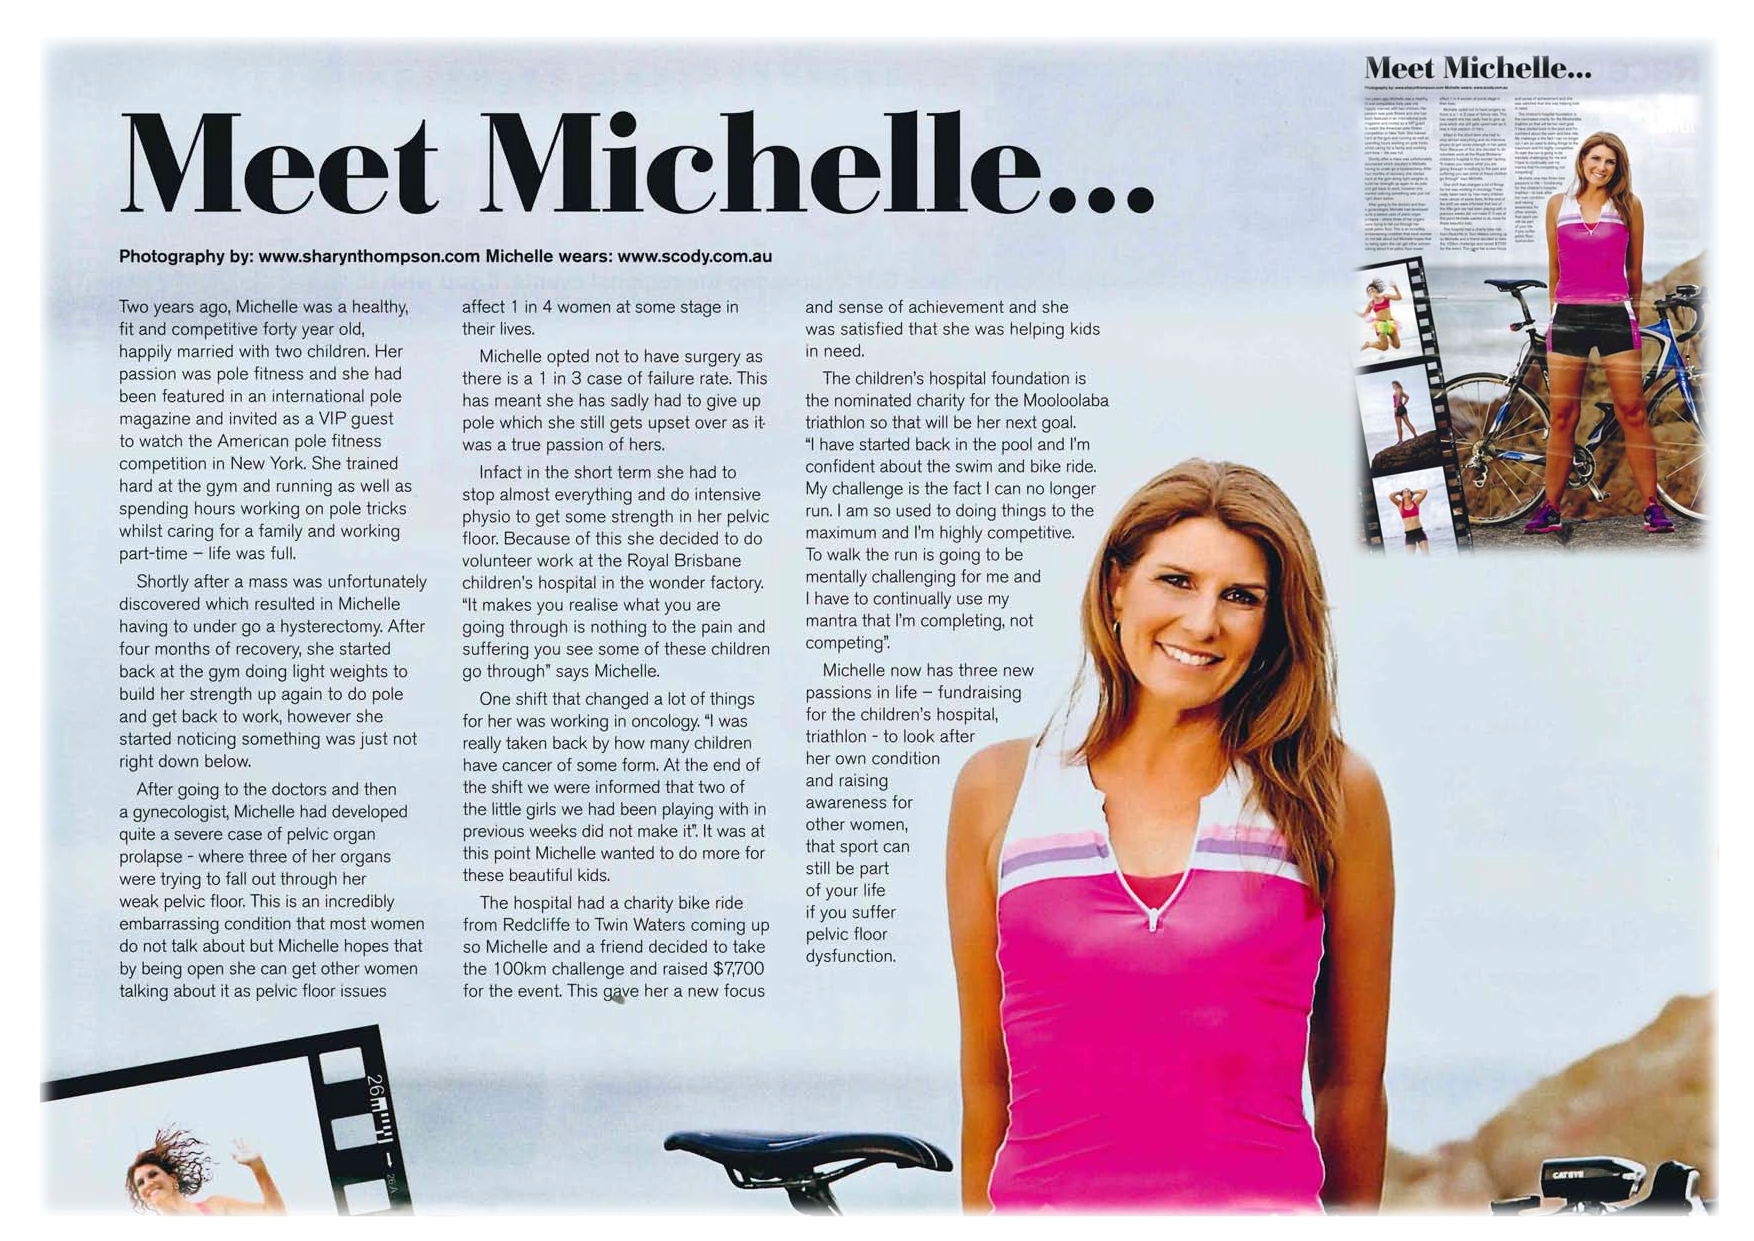 Multisport Magazine Issue 12 June 2014 - Michelle's Case study